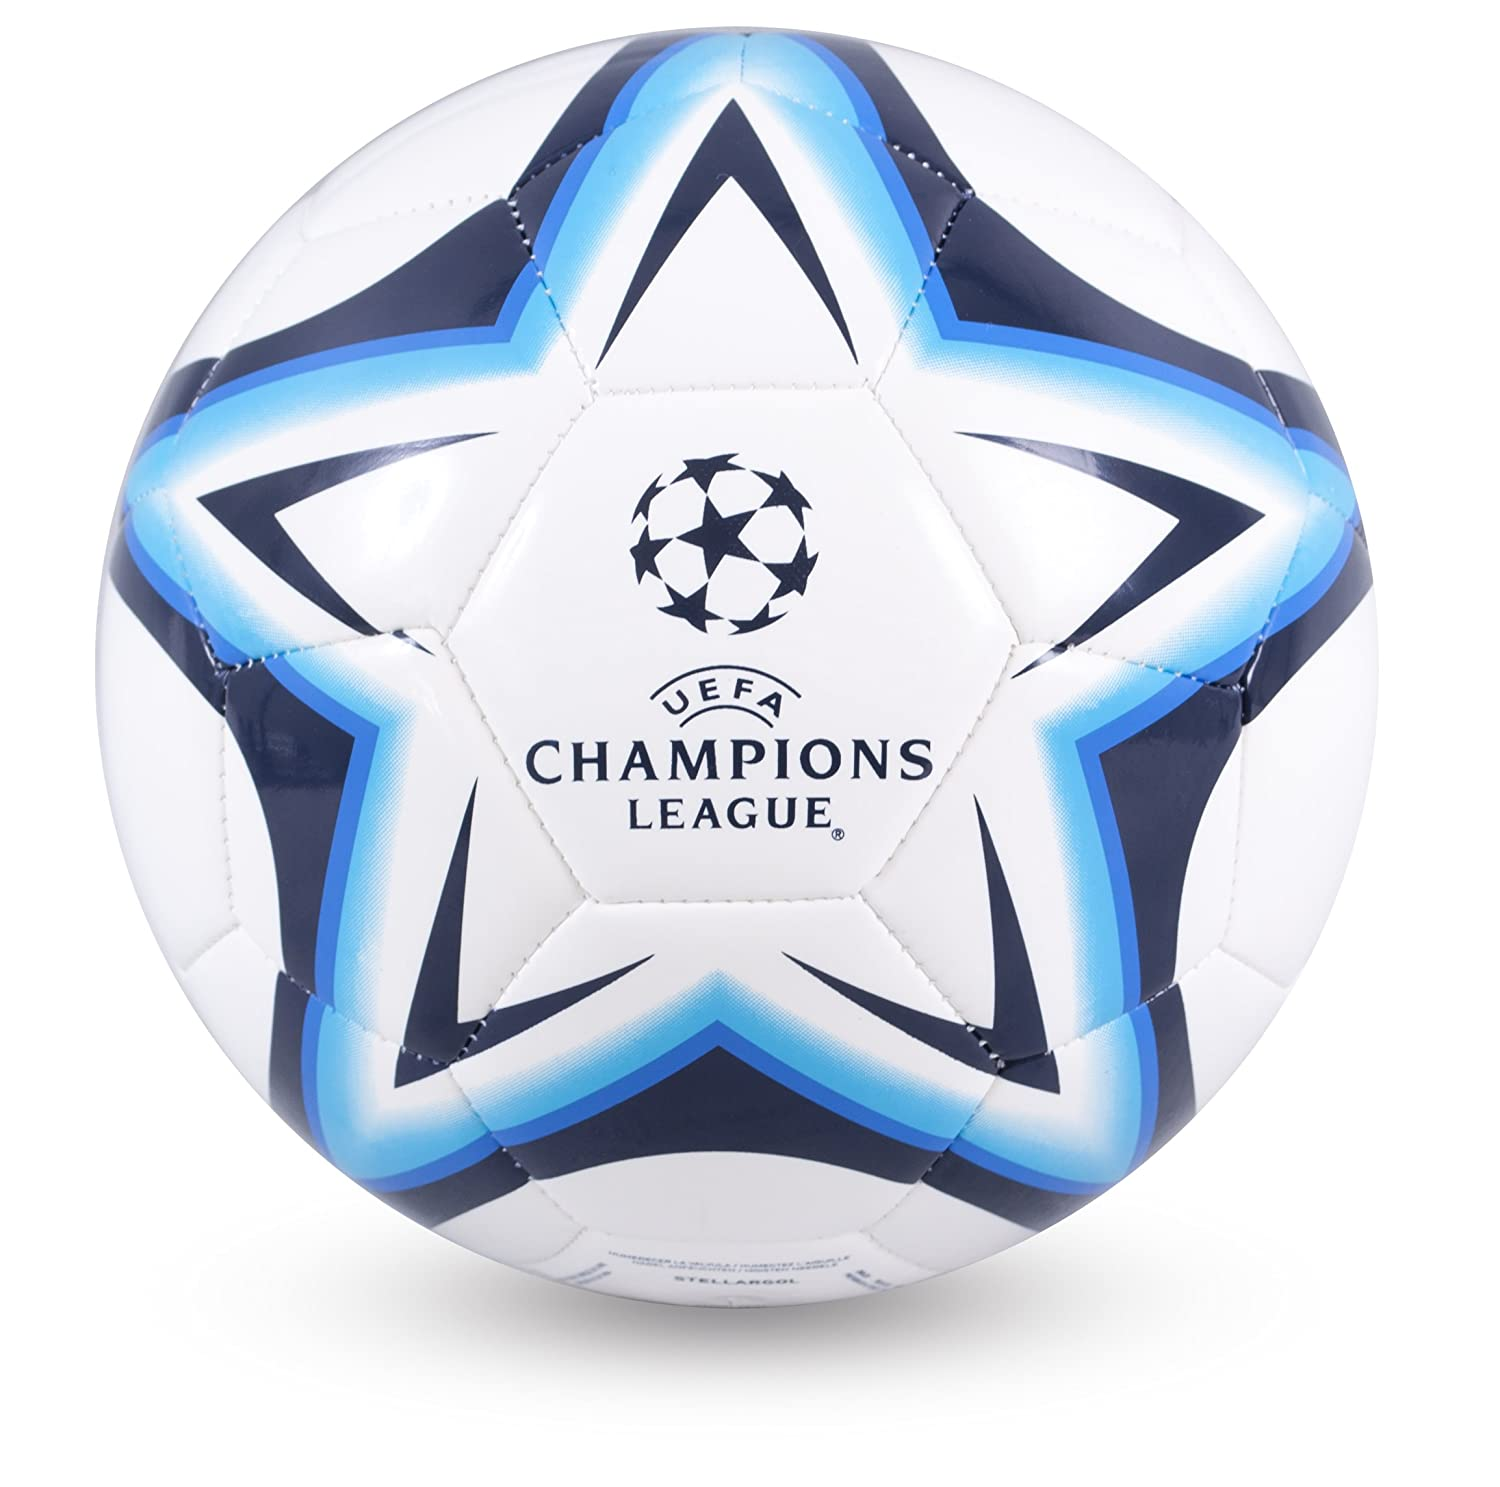 UEFA Champions League CL73040D - Balón de fútbol de ocio: Amazon ...